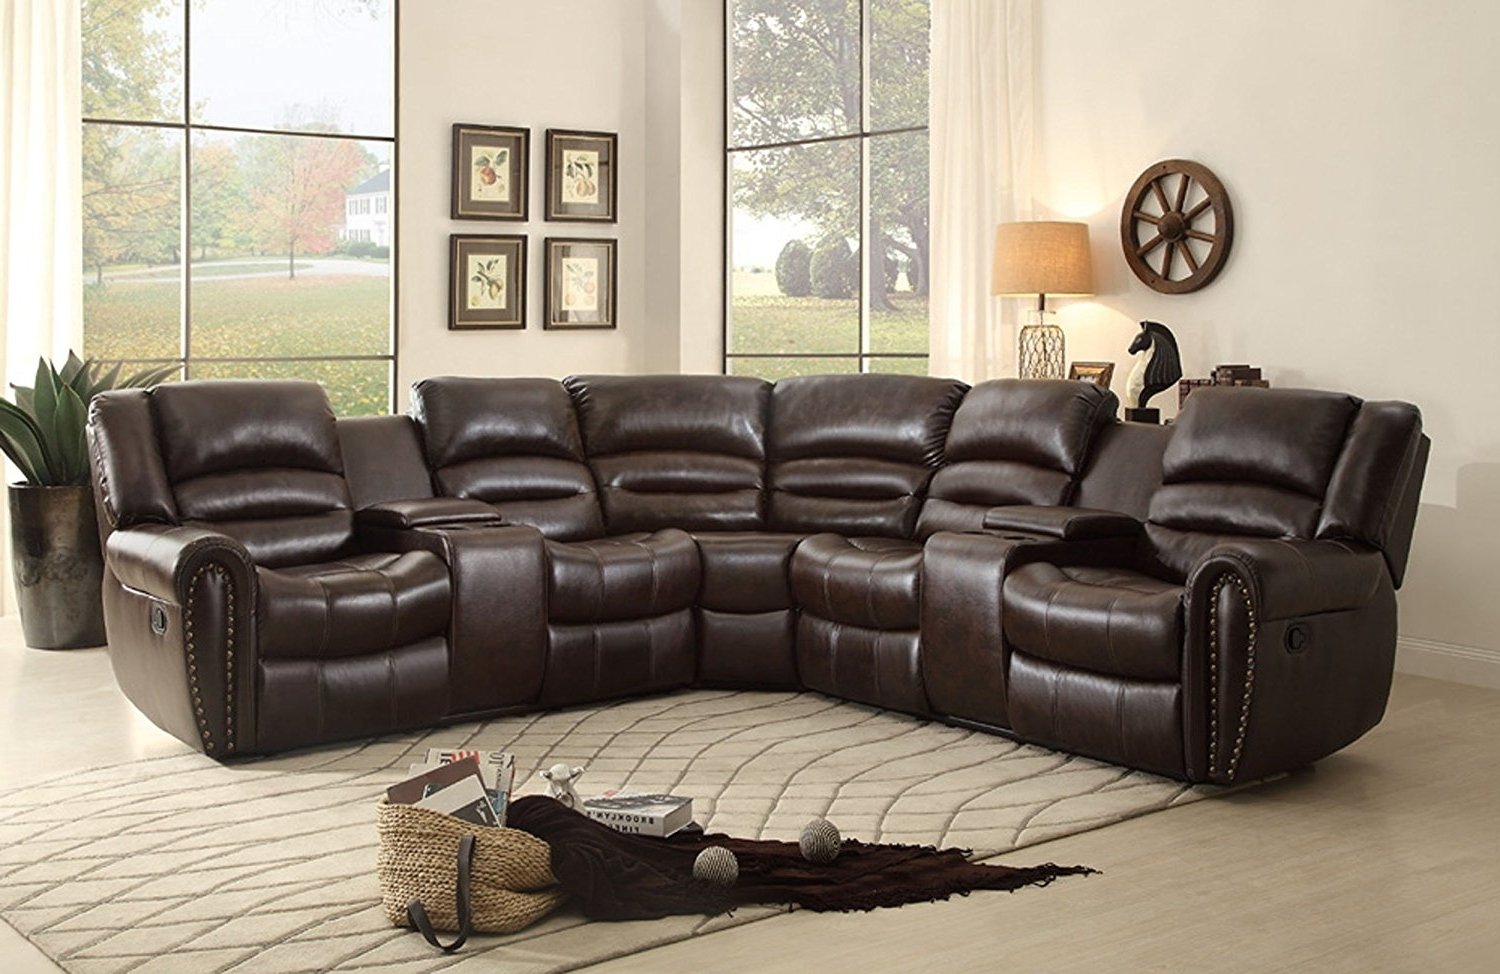 Latest Sectional Sofas With Cup Holders Regarding Sofa : Small Leather Sectional Sofa With Recliner Leather Recliner (View 10 of 20)